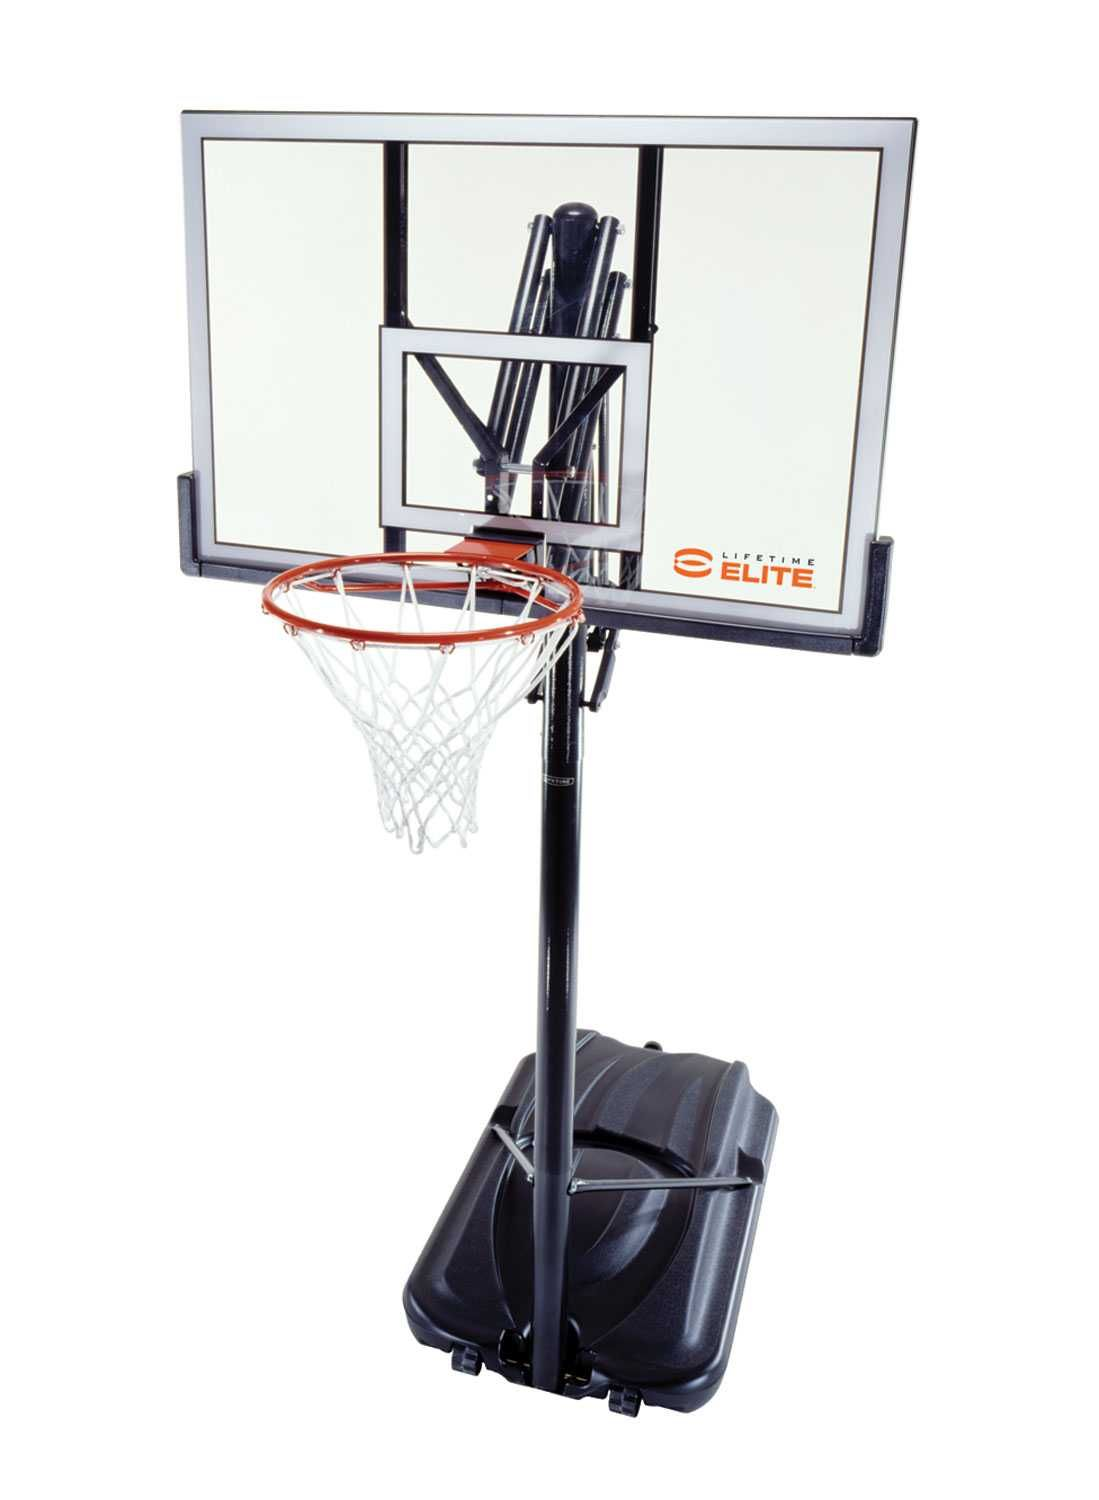 Lifetime Elite Series Basketball Hoop : lifetime, elite, series, basketball, Power, Basketball, System, Assembly, Instructions, [Model-90878], Manuals+